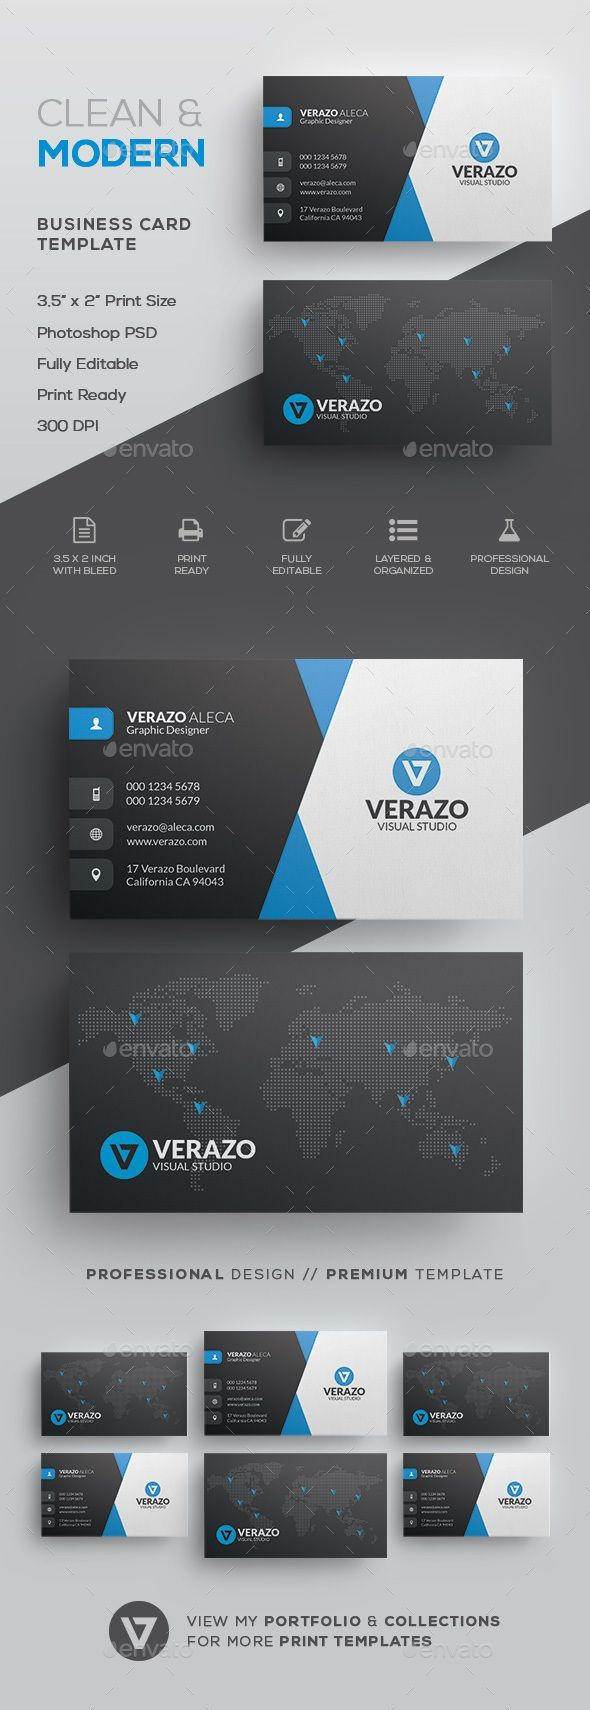 Templates   Business Card Template Word Online Also Business Card     Templates   Business Card Template Word Online Also Business Card Design  Online Free Psd Download In Conjunction With Avery Business Card Template